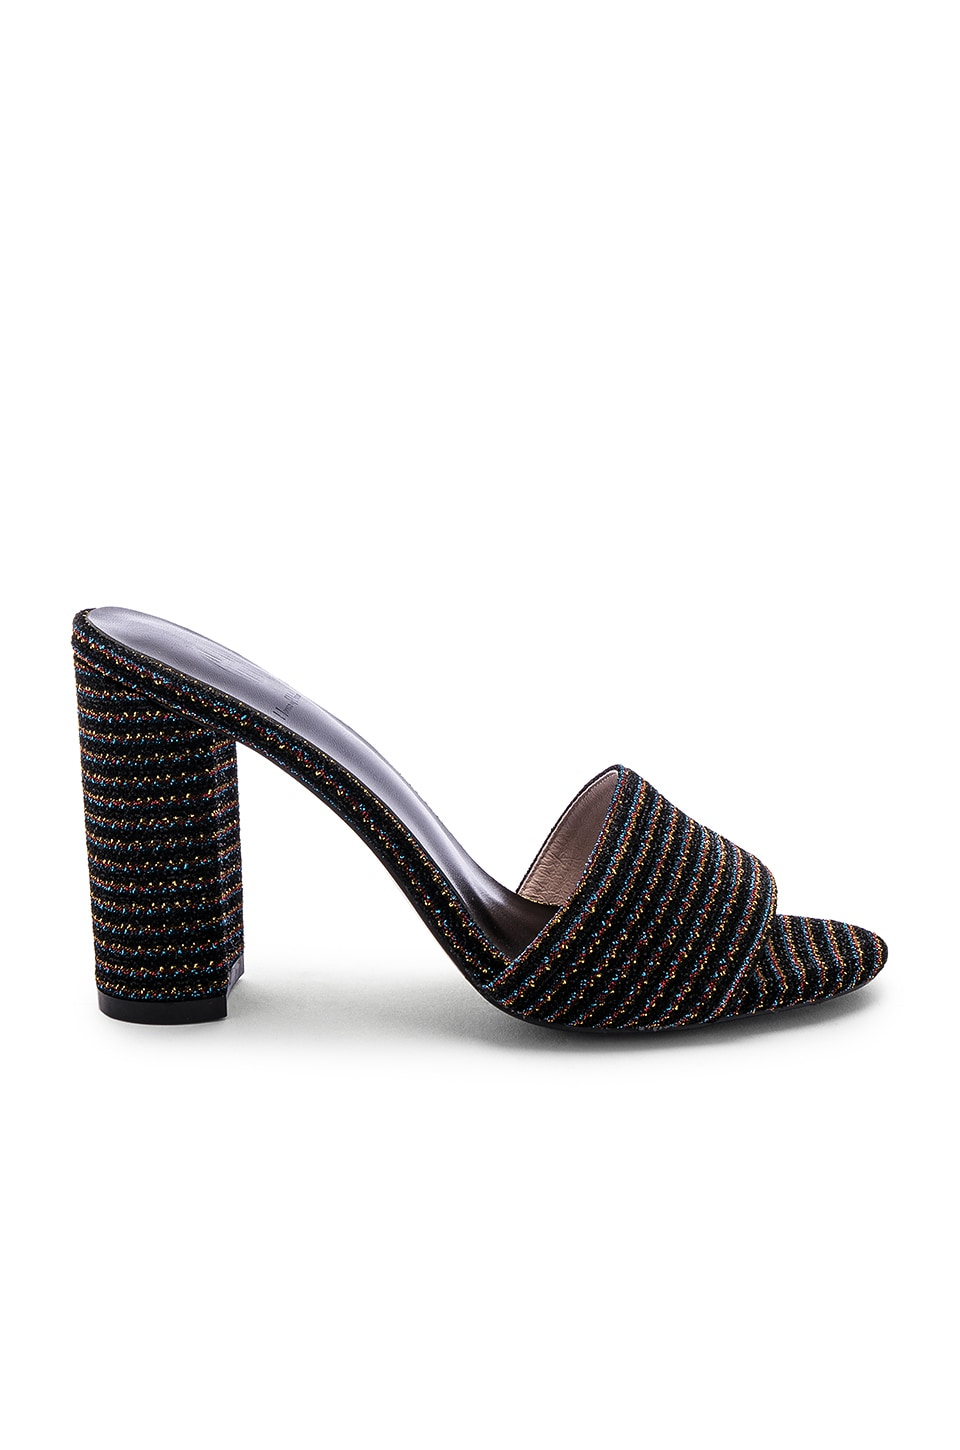 RAYE X House Of Harlow 1960 Juju Heel in Black Stripe